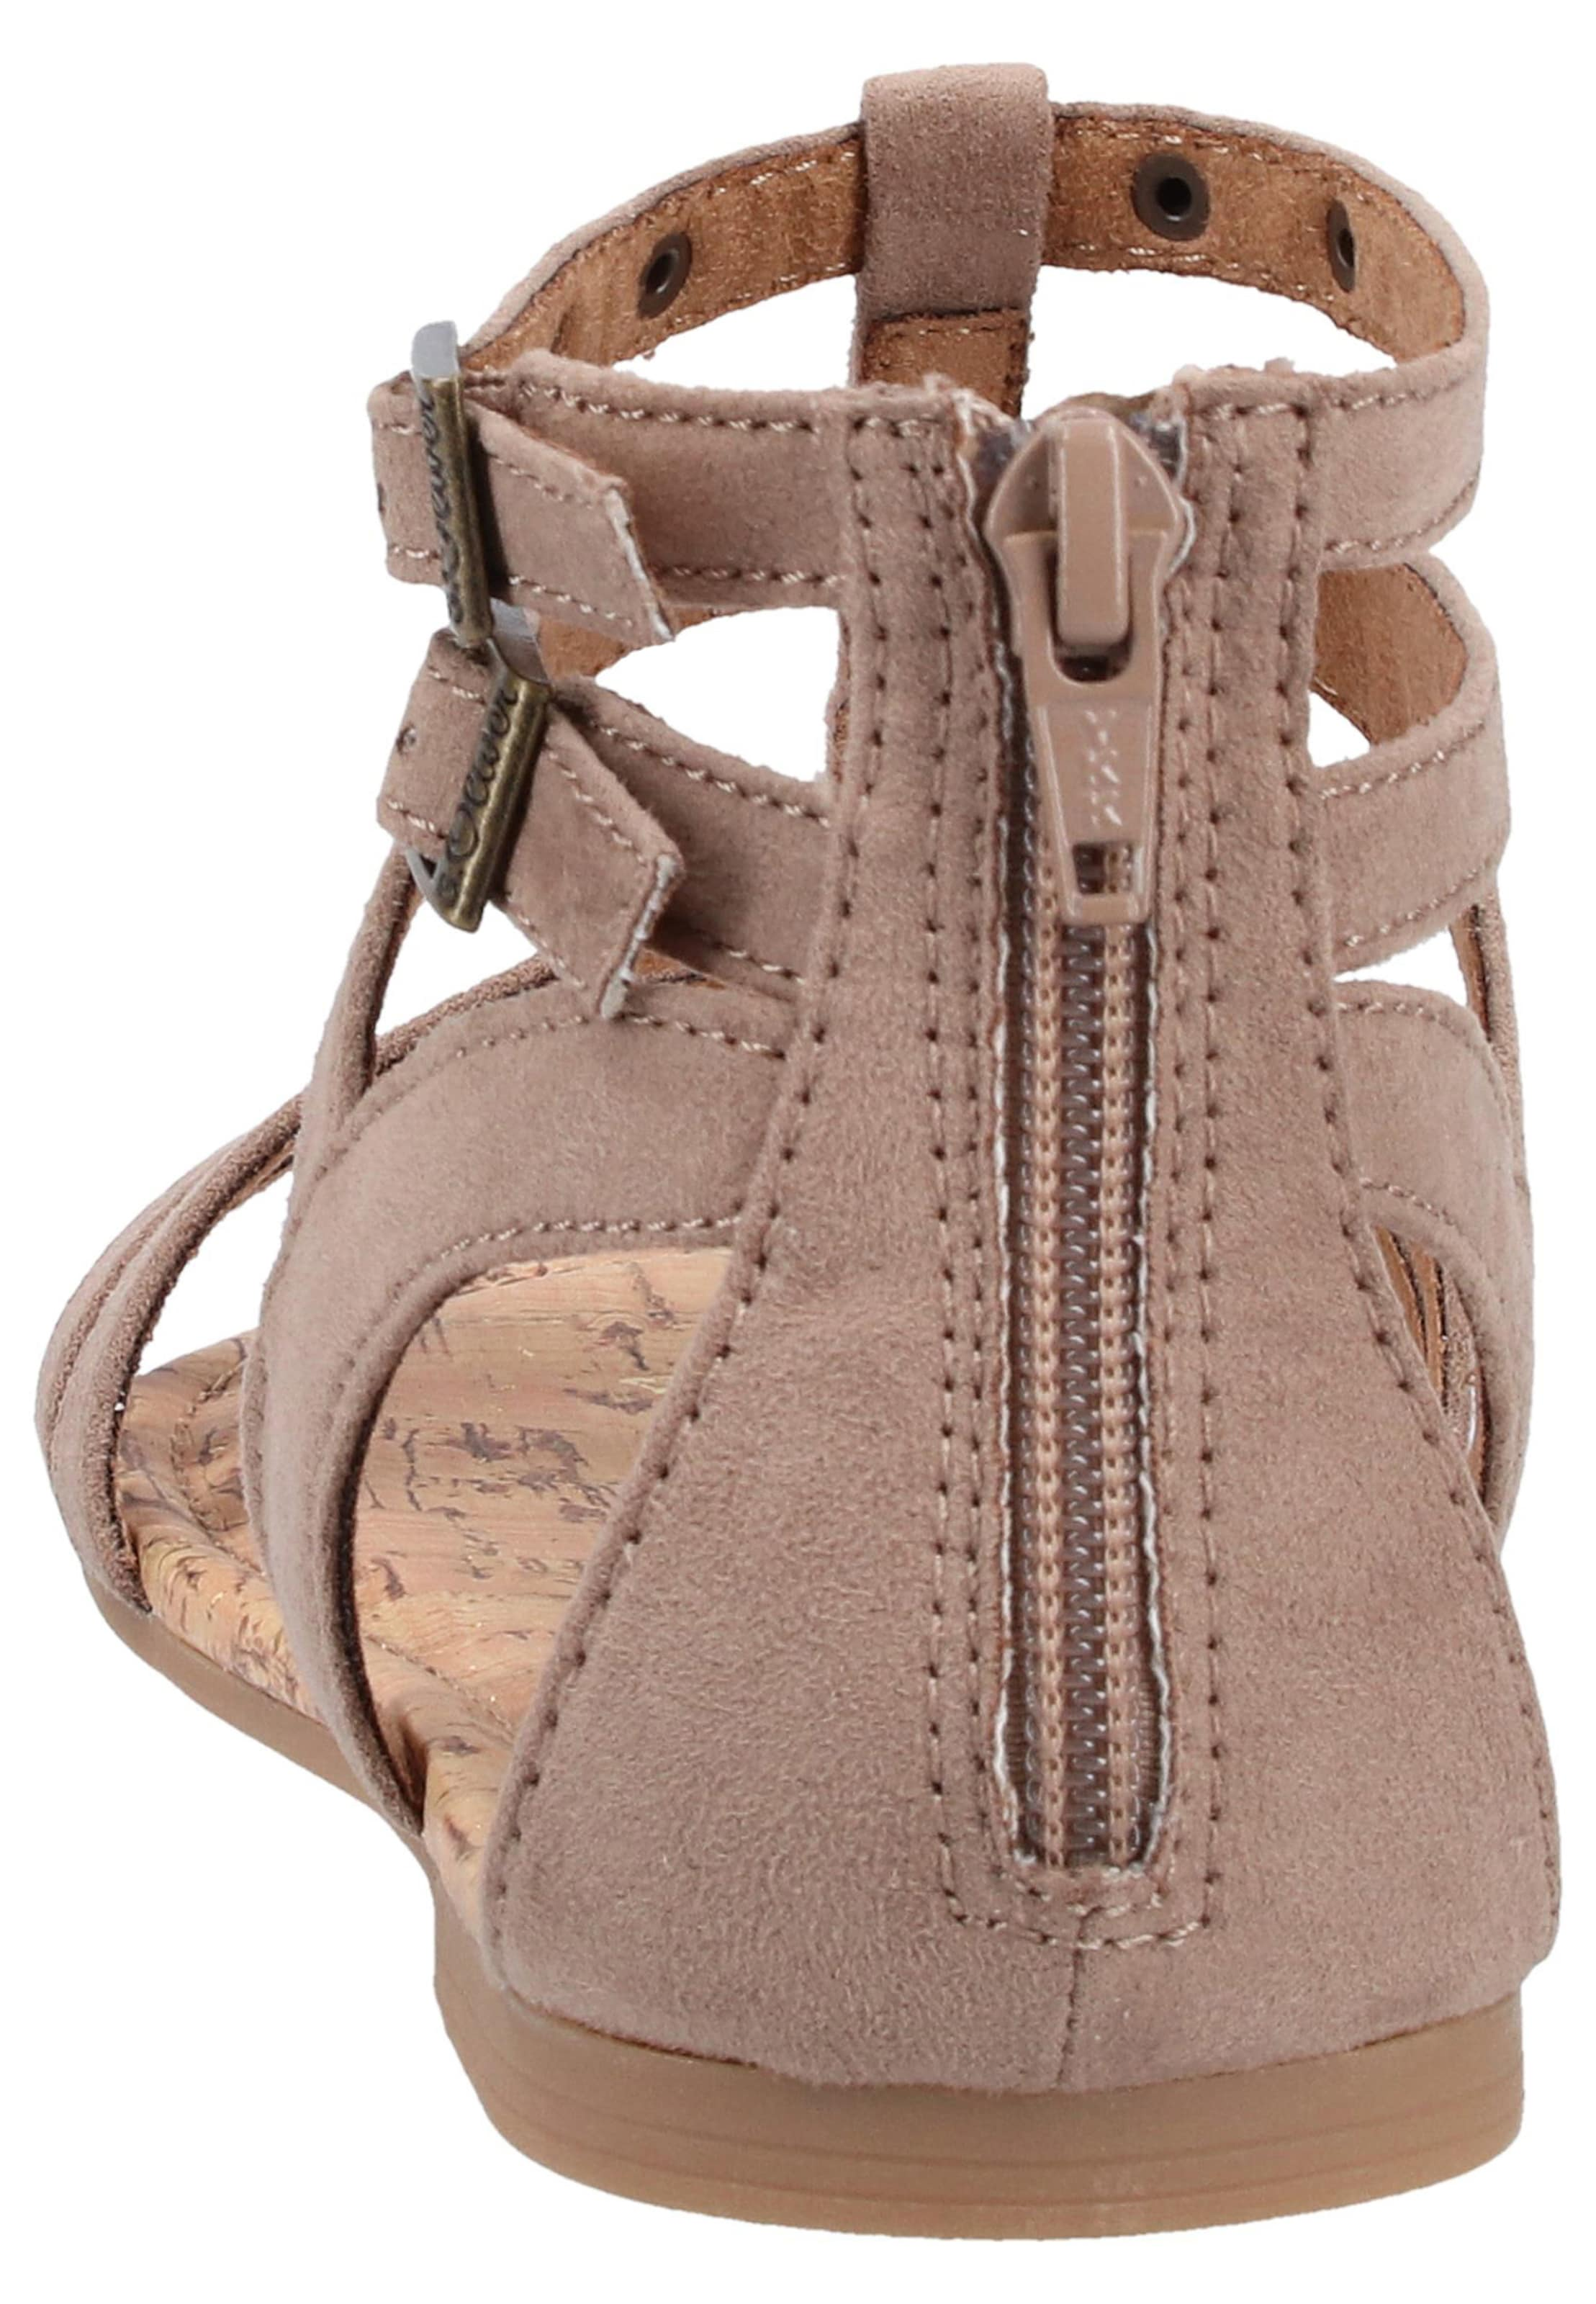 oliver oliver Sandale S Taupe S Sandale Taupe In S In mvNnO08w